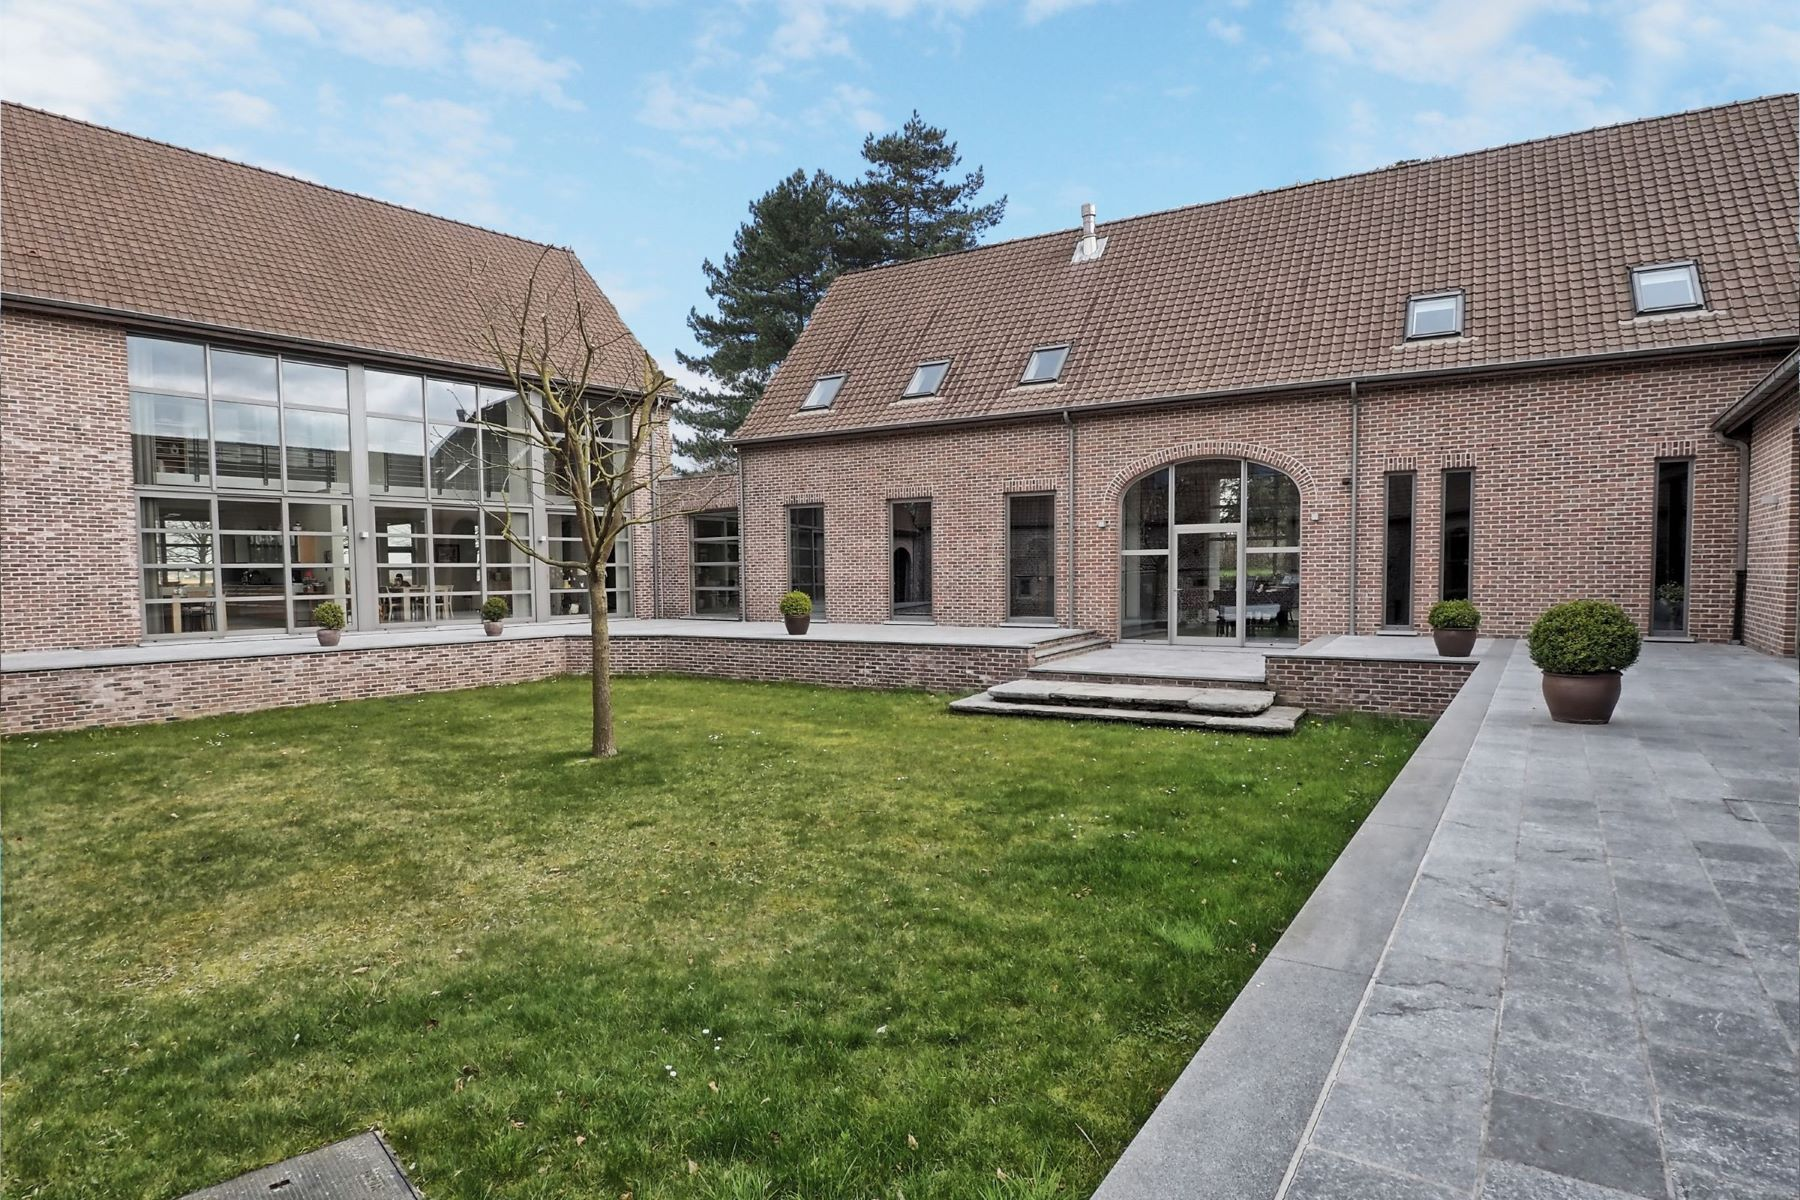 Single Family Home for Sale at Néchin in 5 mins, Splendid farm entirely rehabilitated of 671 m² Other Belgium, Other Areas In Belgium, 7730 Belgium